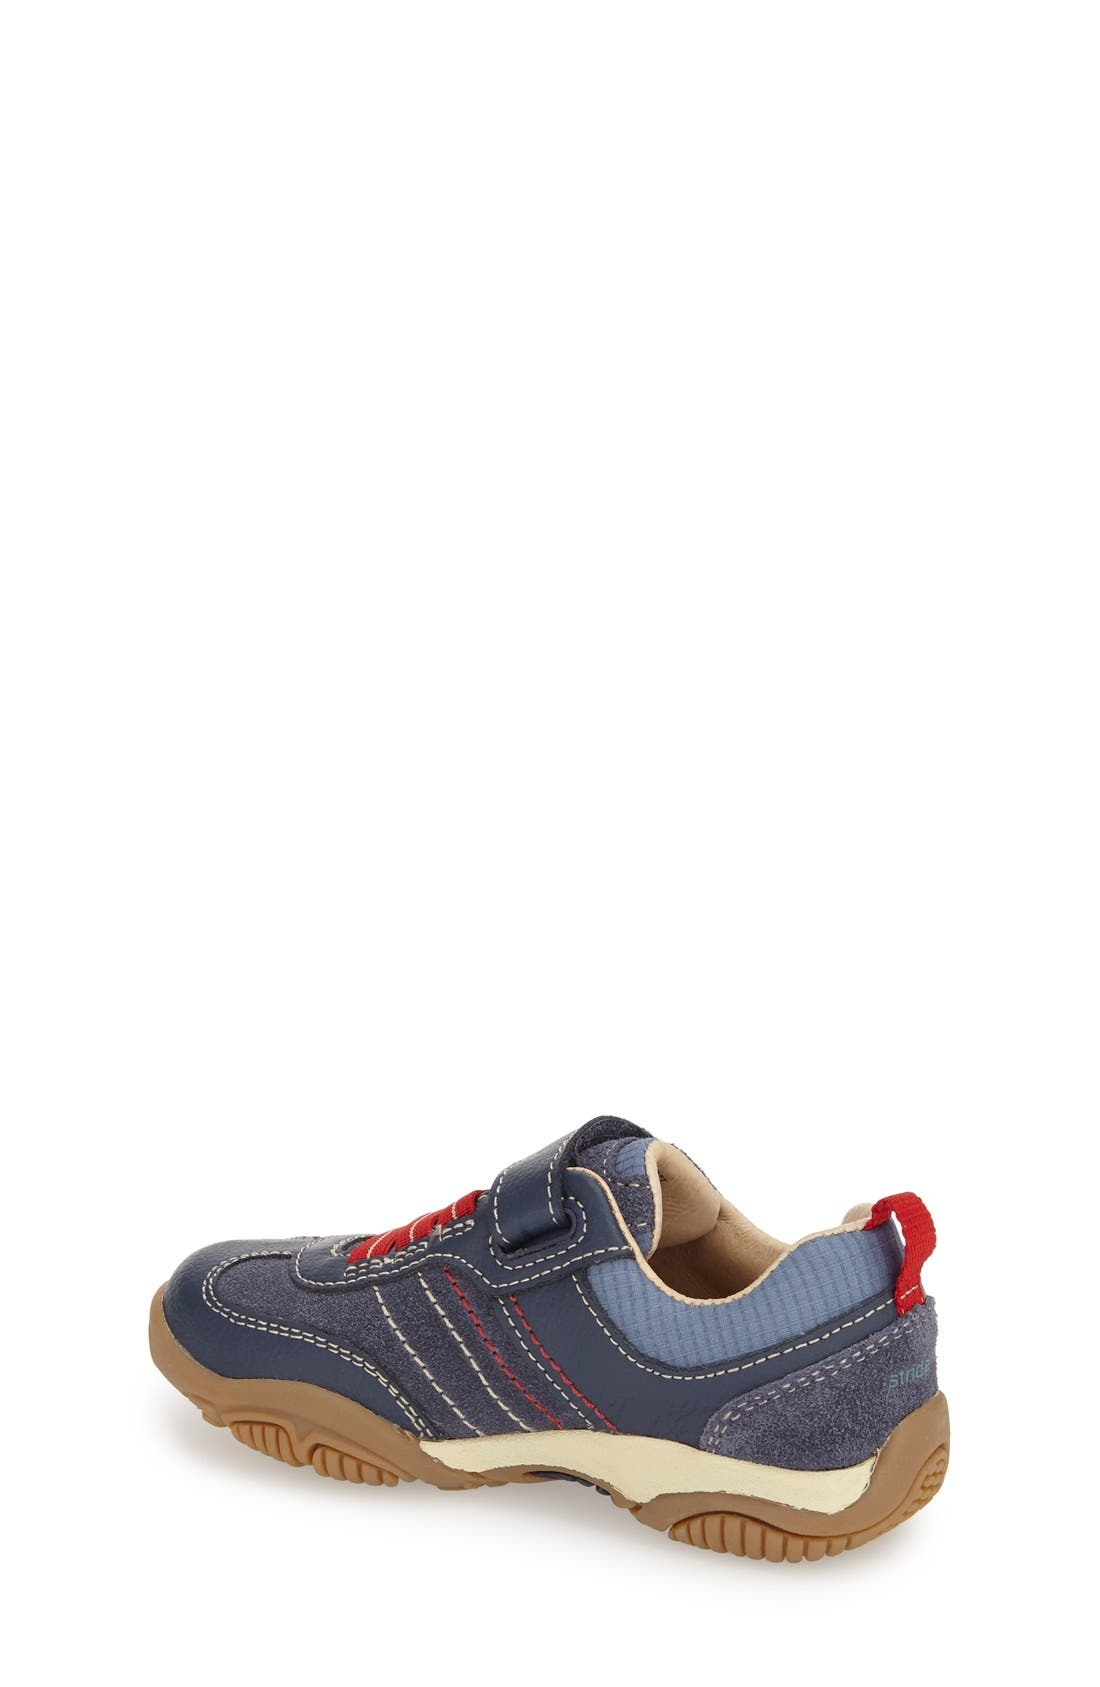 Alternate Image 2  - Stride Rite 'SRT Prescott' Sneaker (Baby, Walker & Toddler)